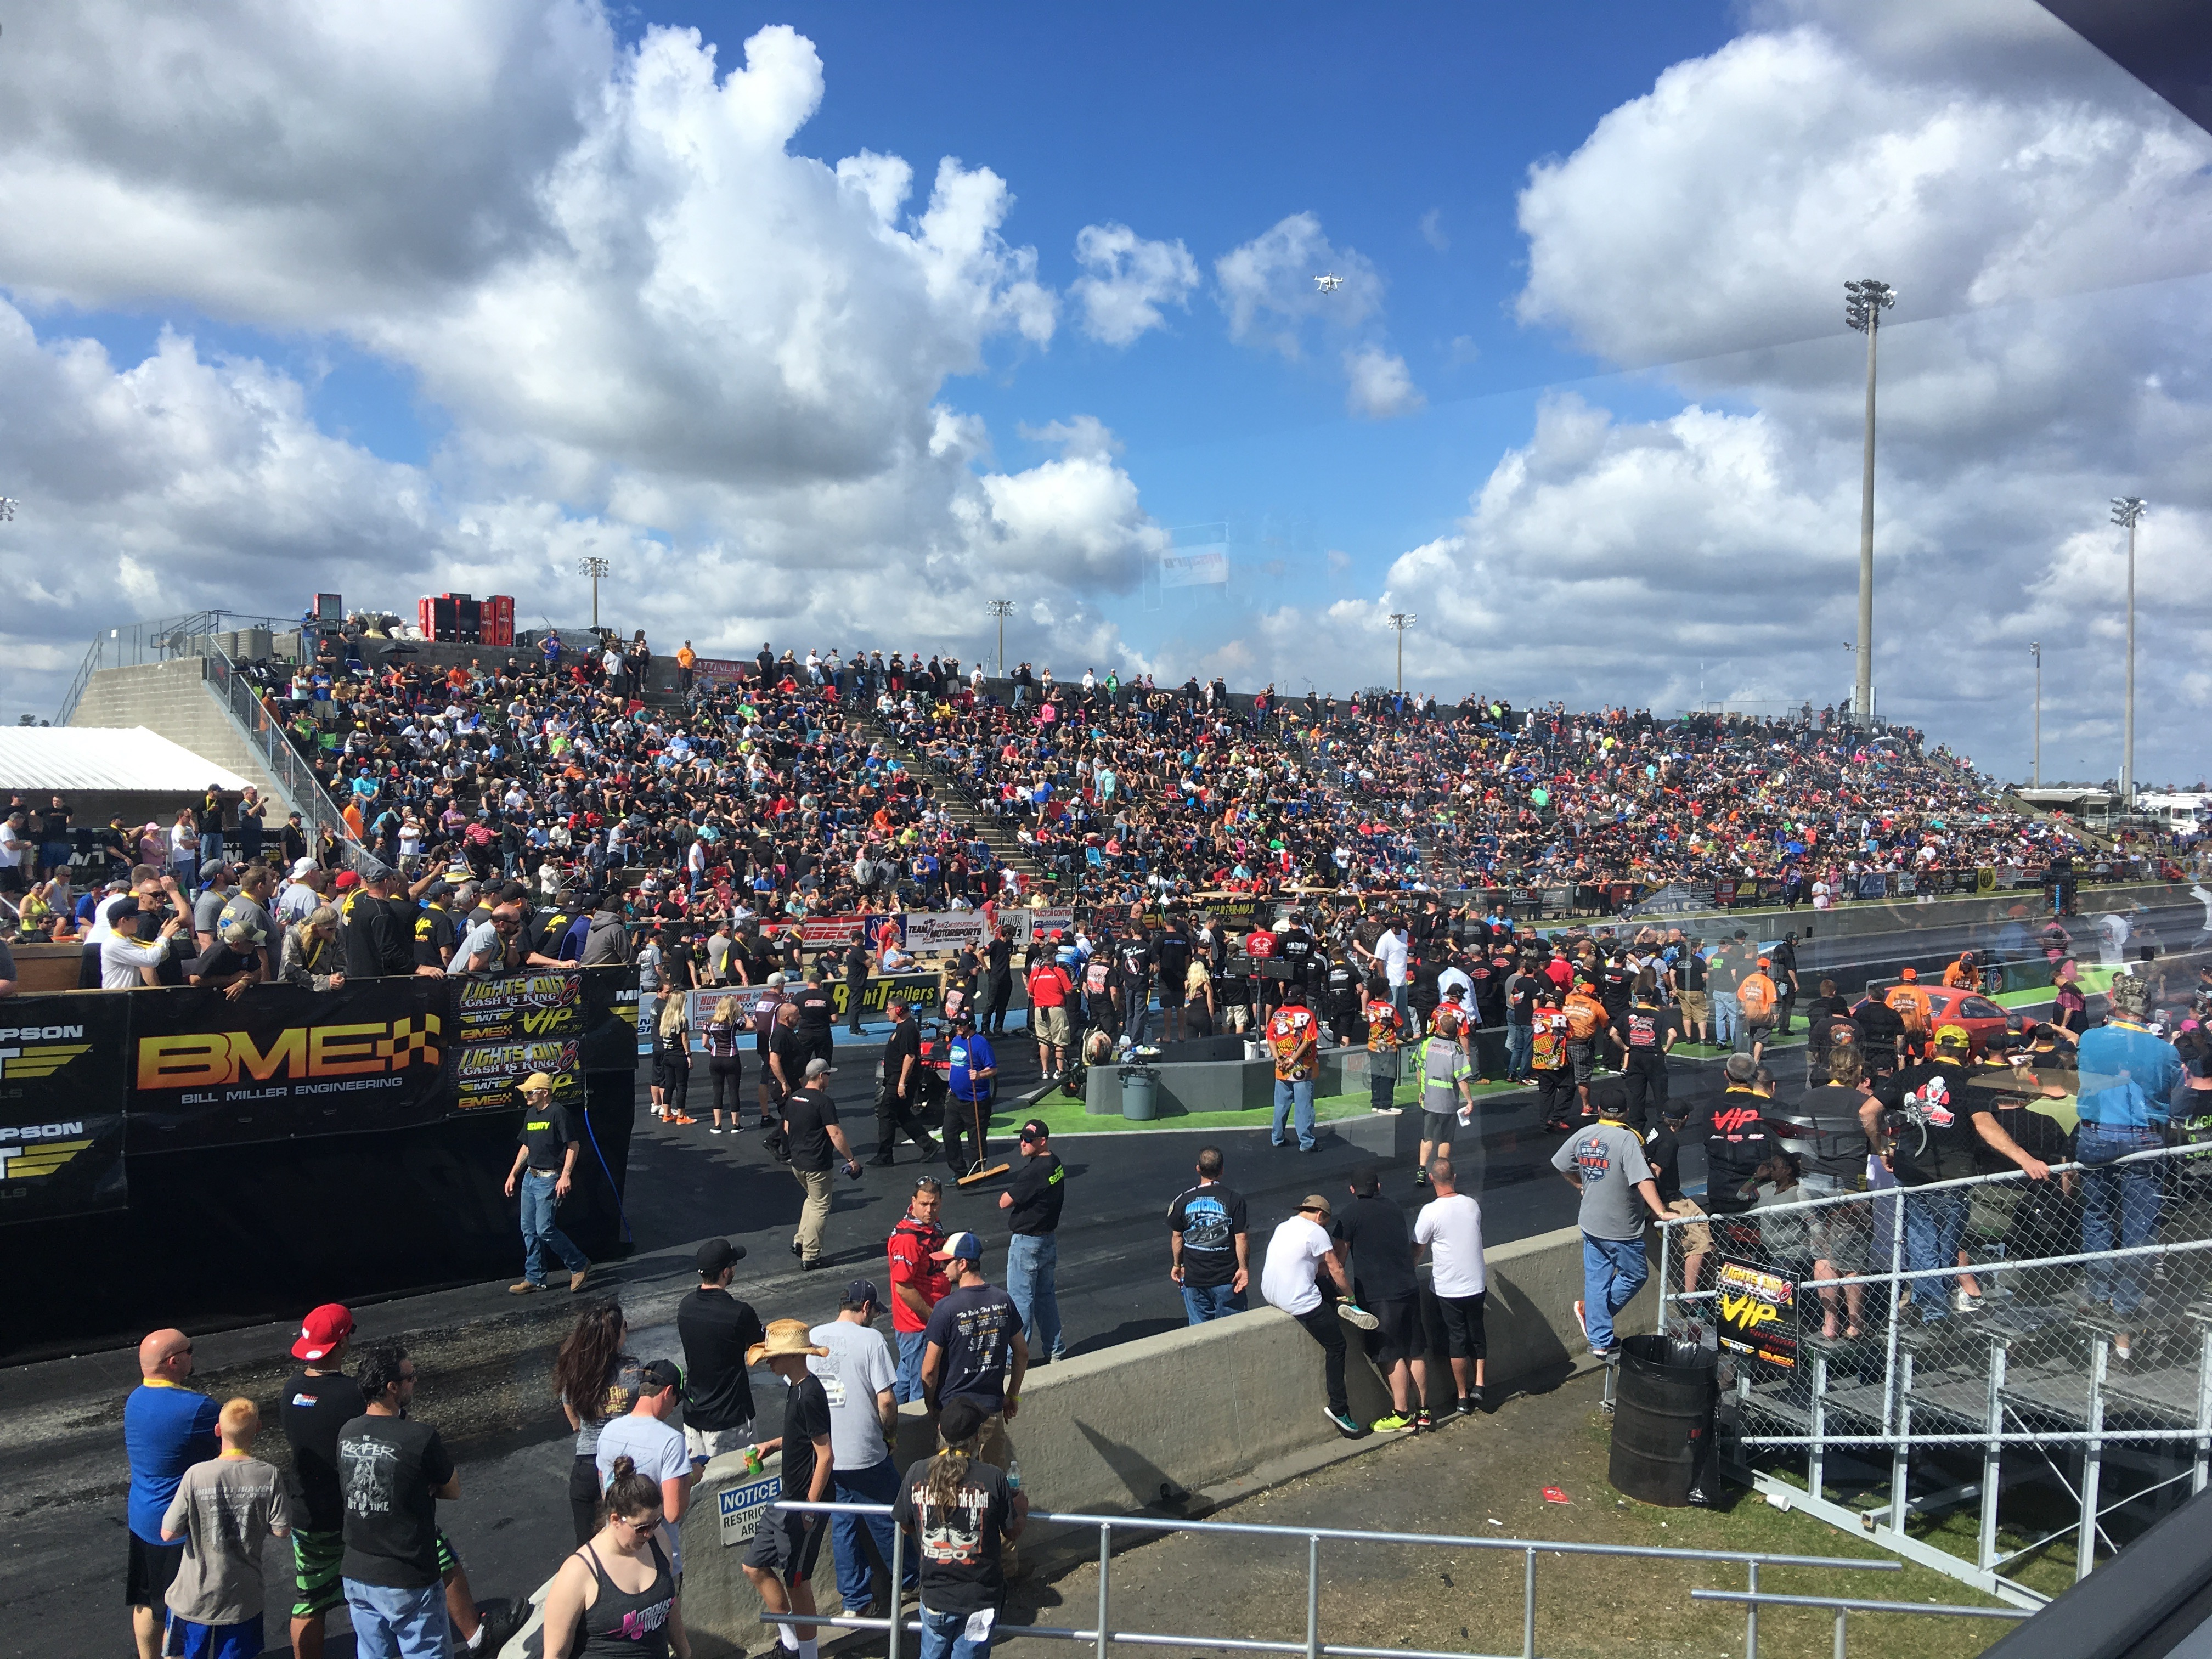 Barnstormin': A Full Drag Strip Is A Happy Drag Strip, But Tracks Cannot Rest On Their Laurels